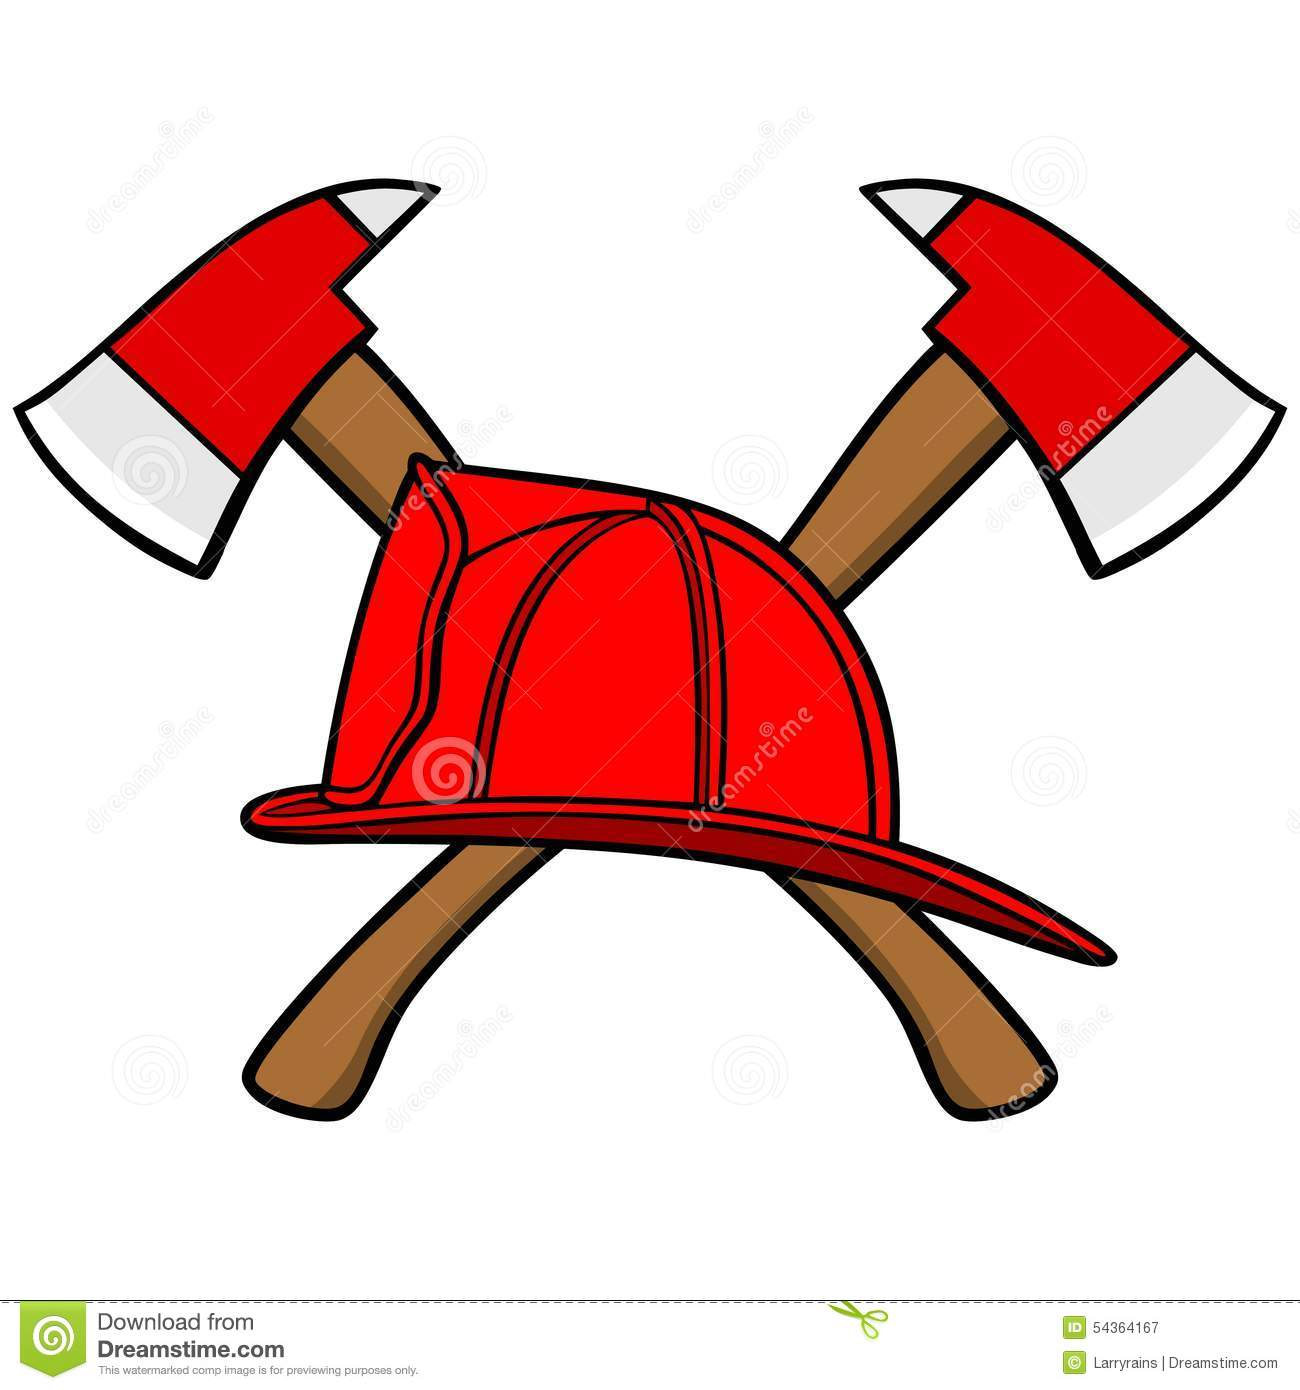 Firefighter Helmet And Axes Stock Vector - Image: 54364167